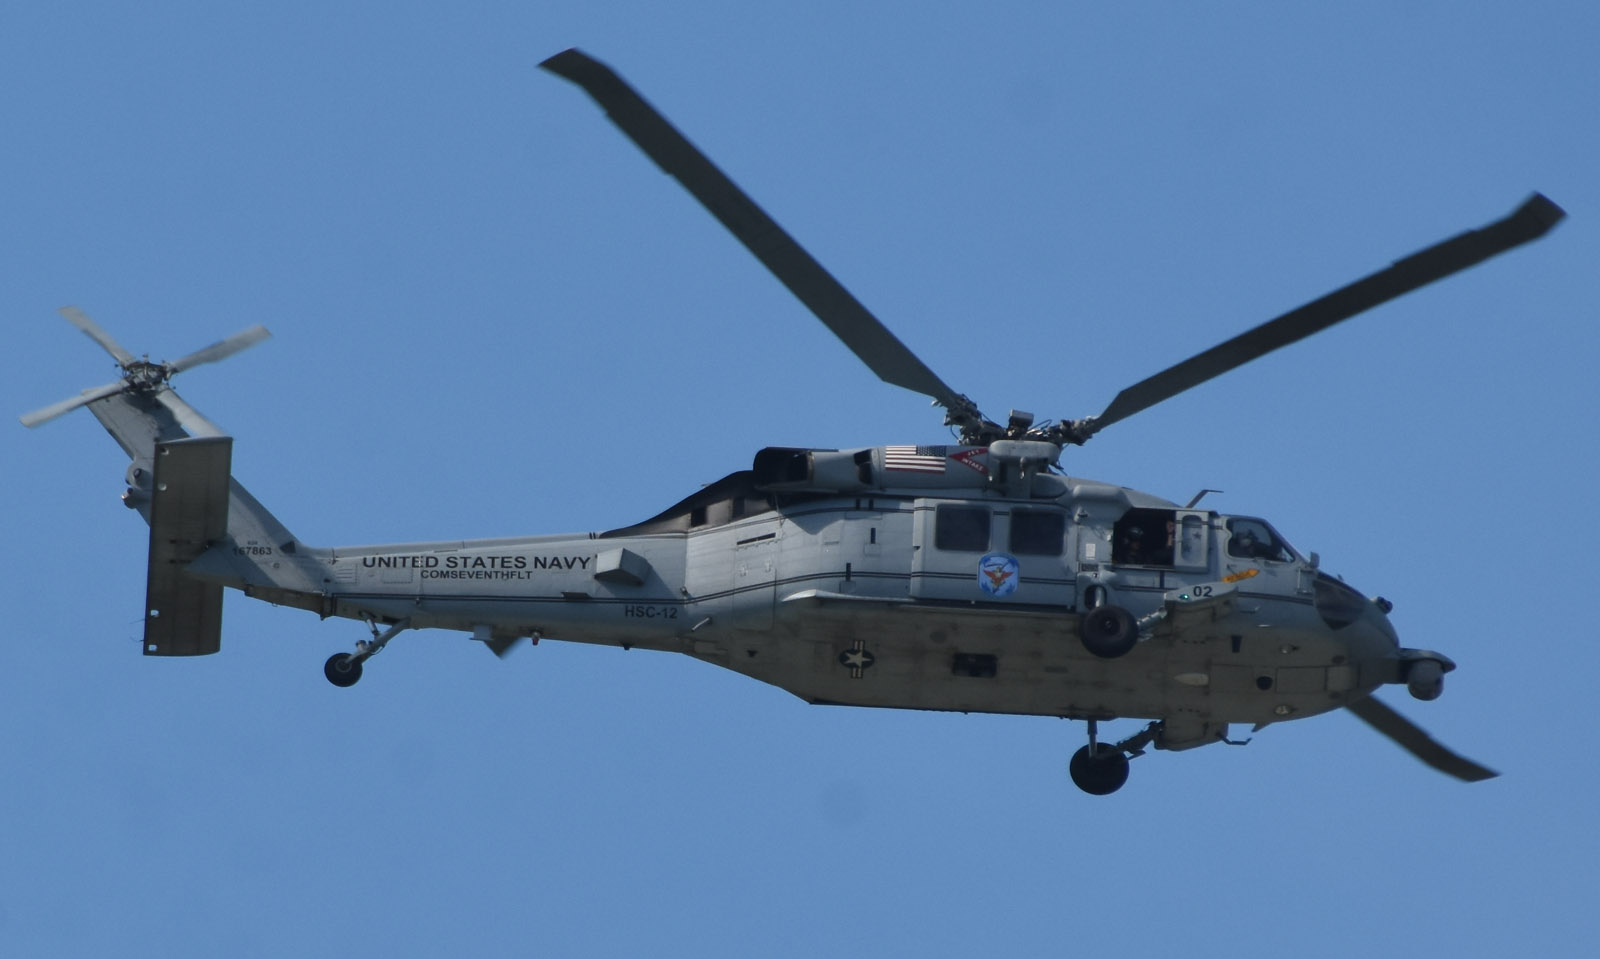 Mh60s180917g944